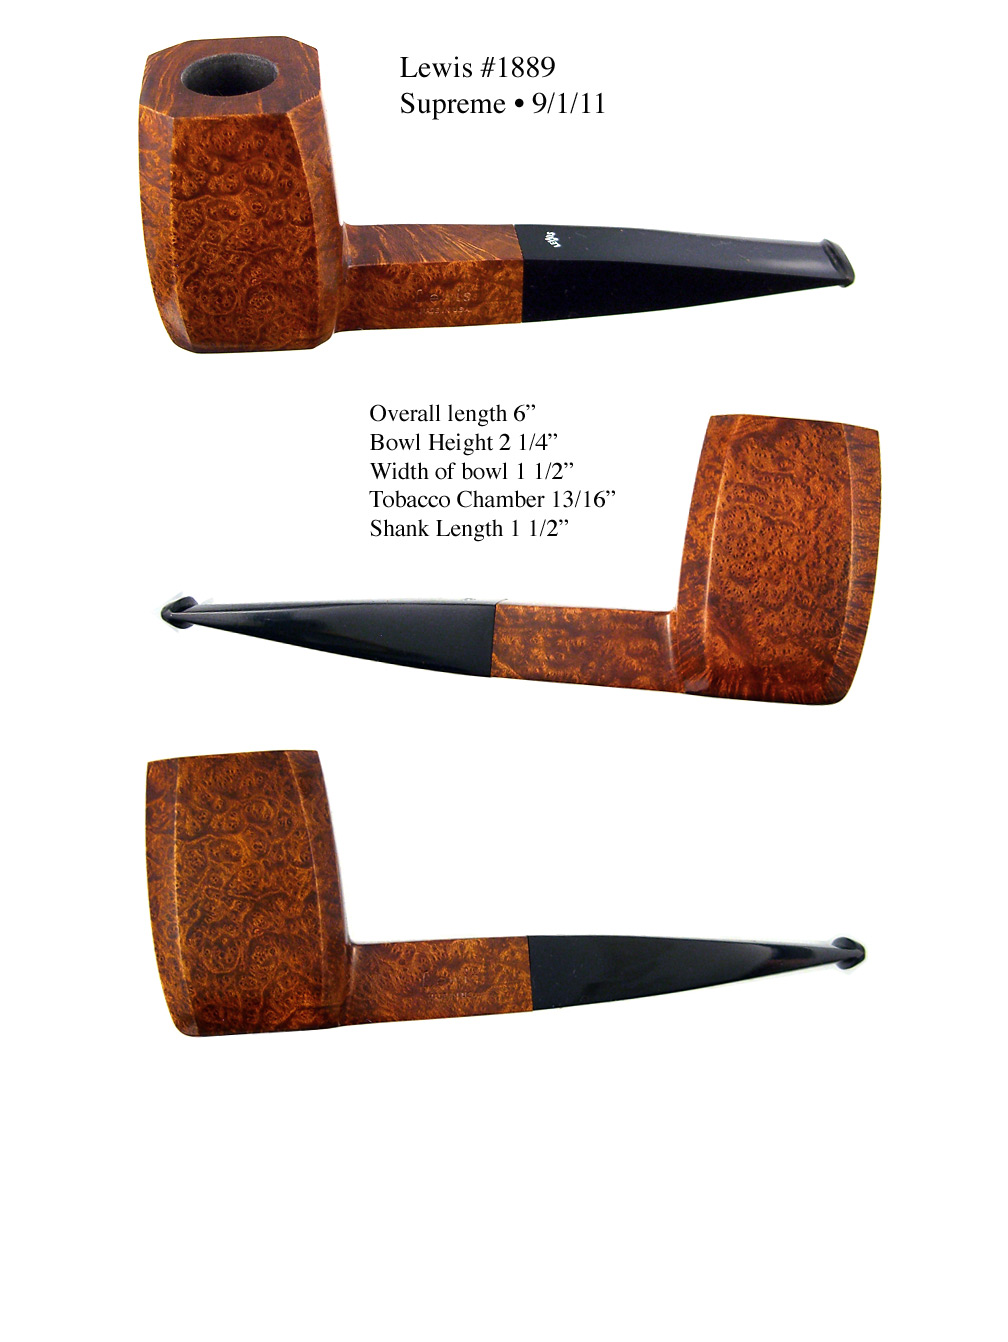 Rich Lewis Pipes #1888